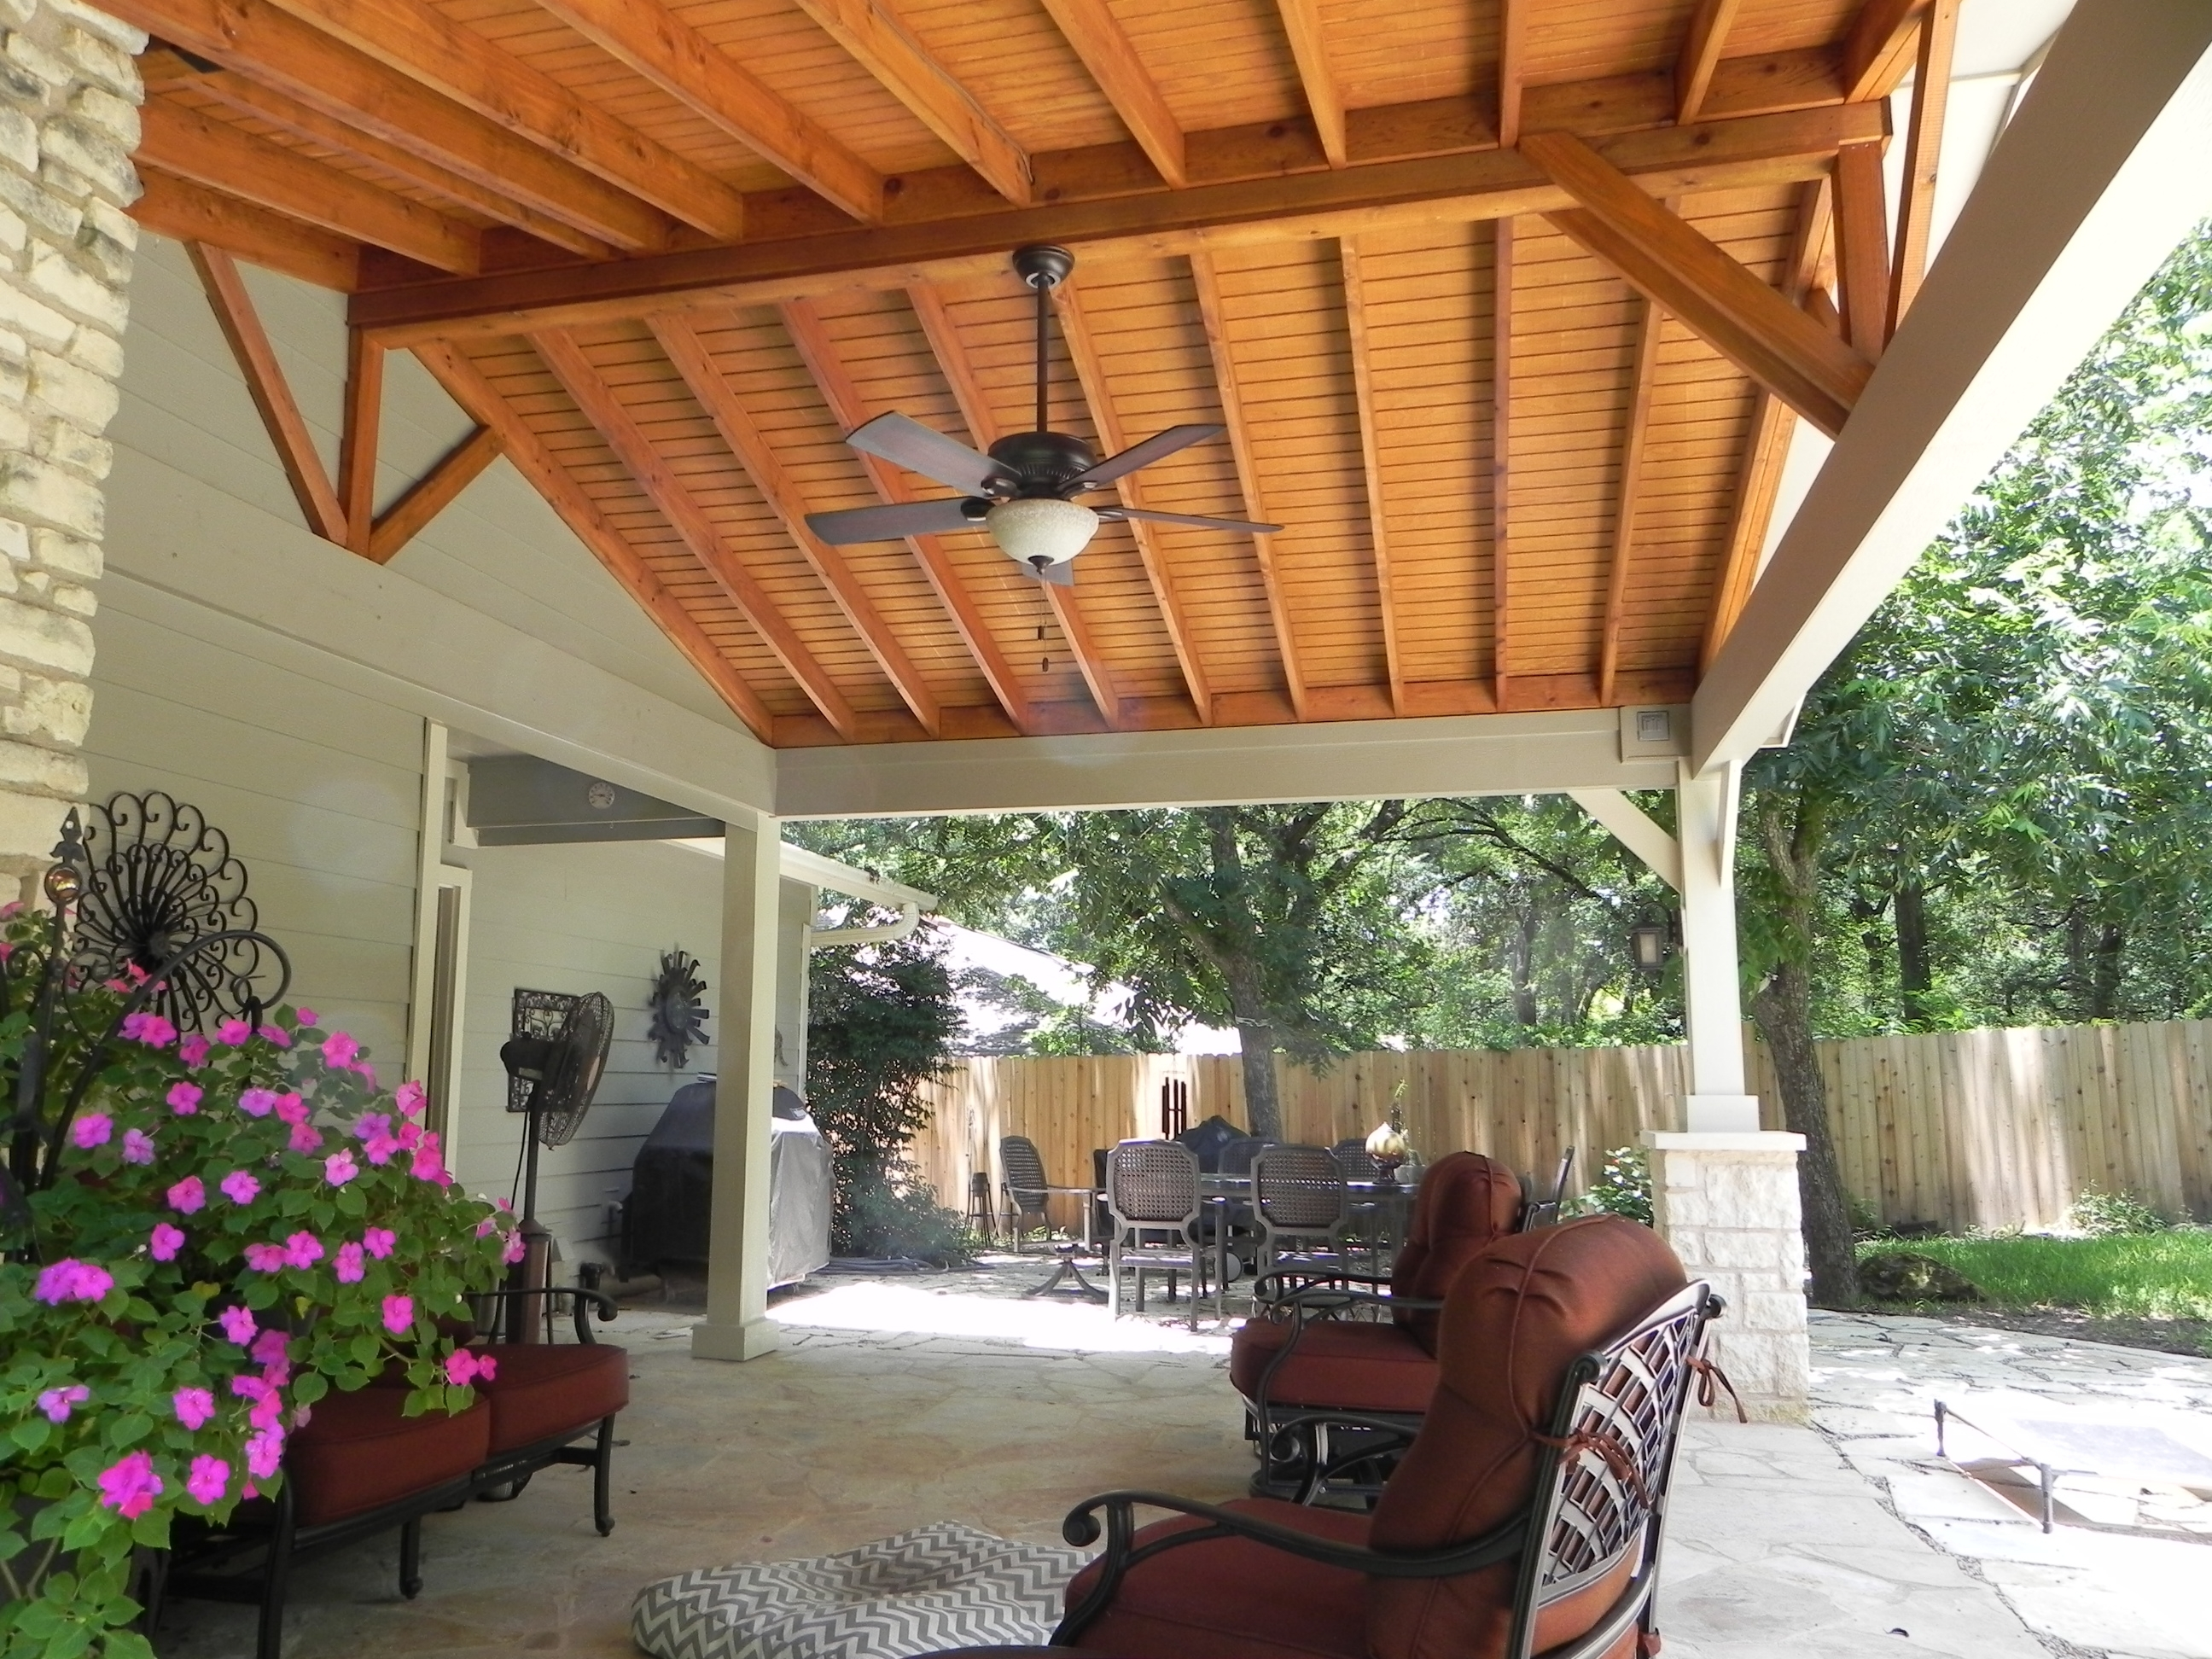 Austin Custom Covered Patios (View 1 of 20)